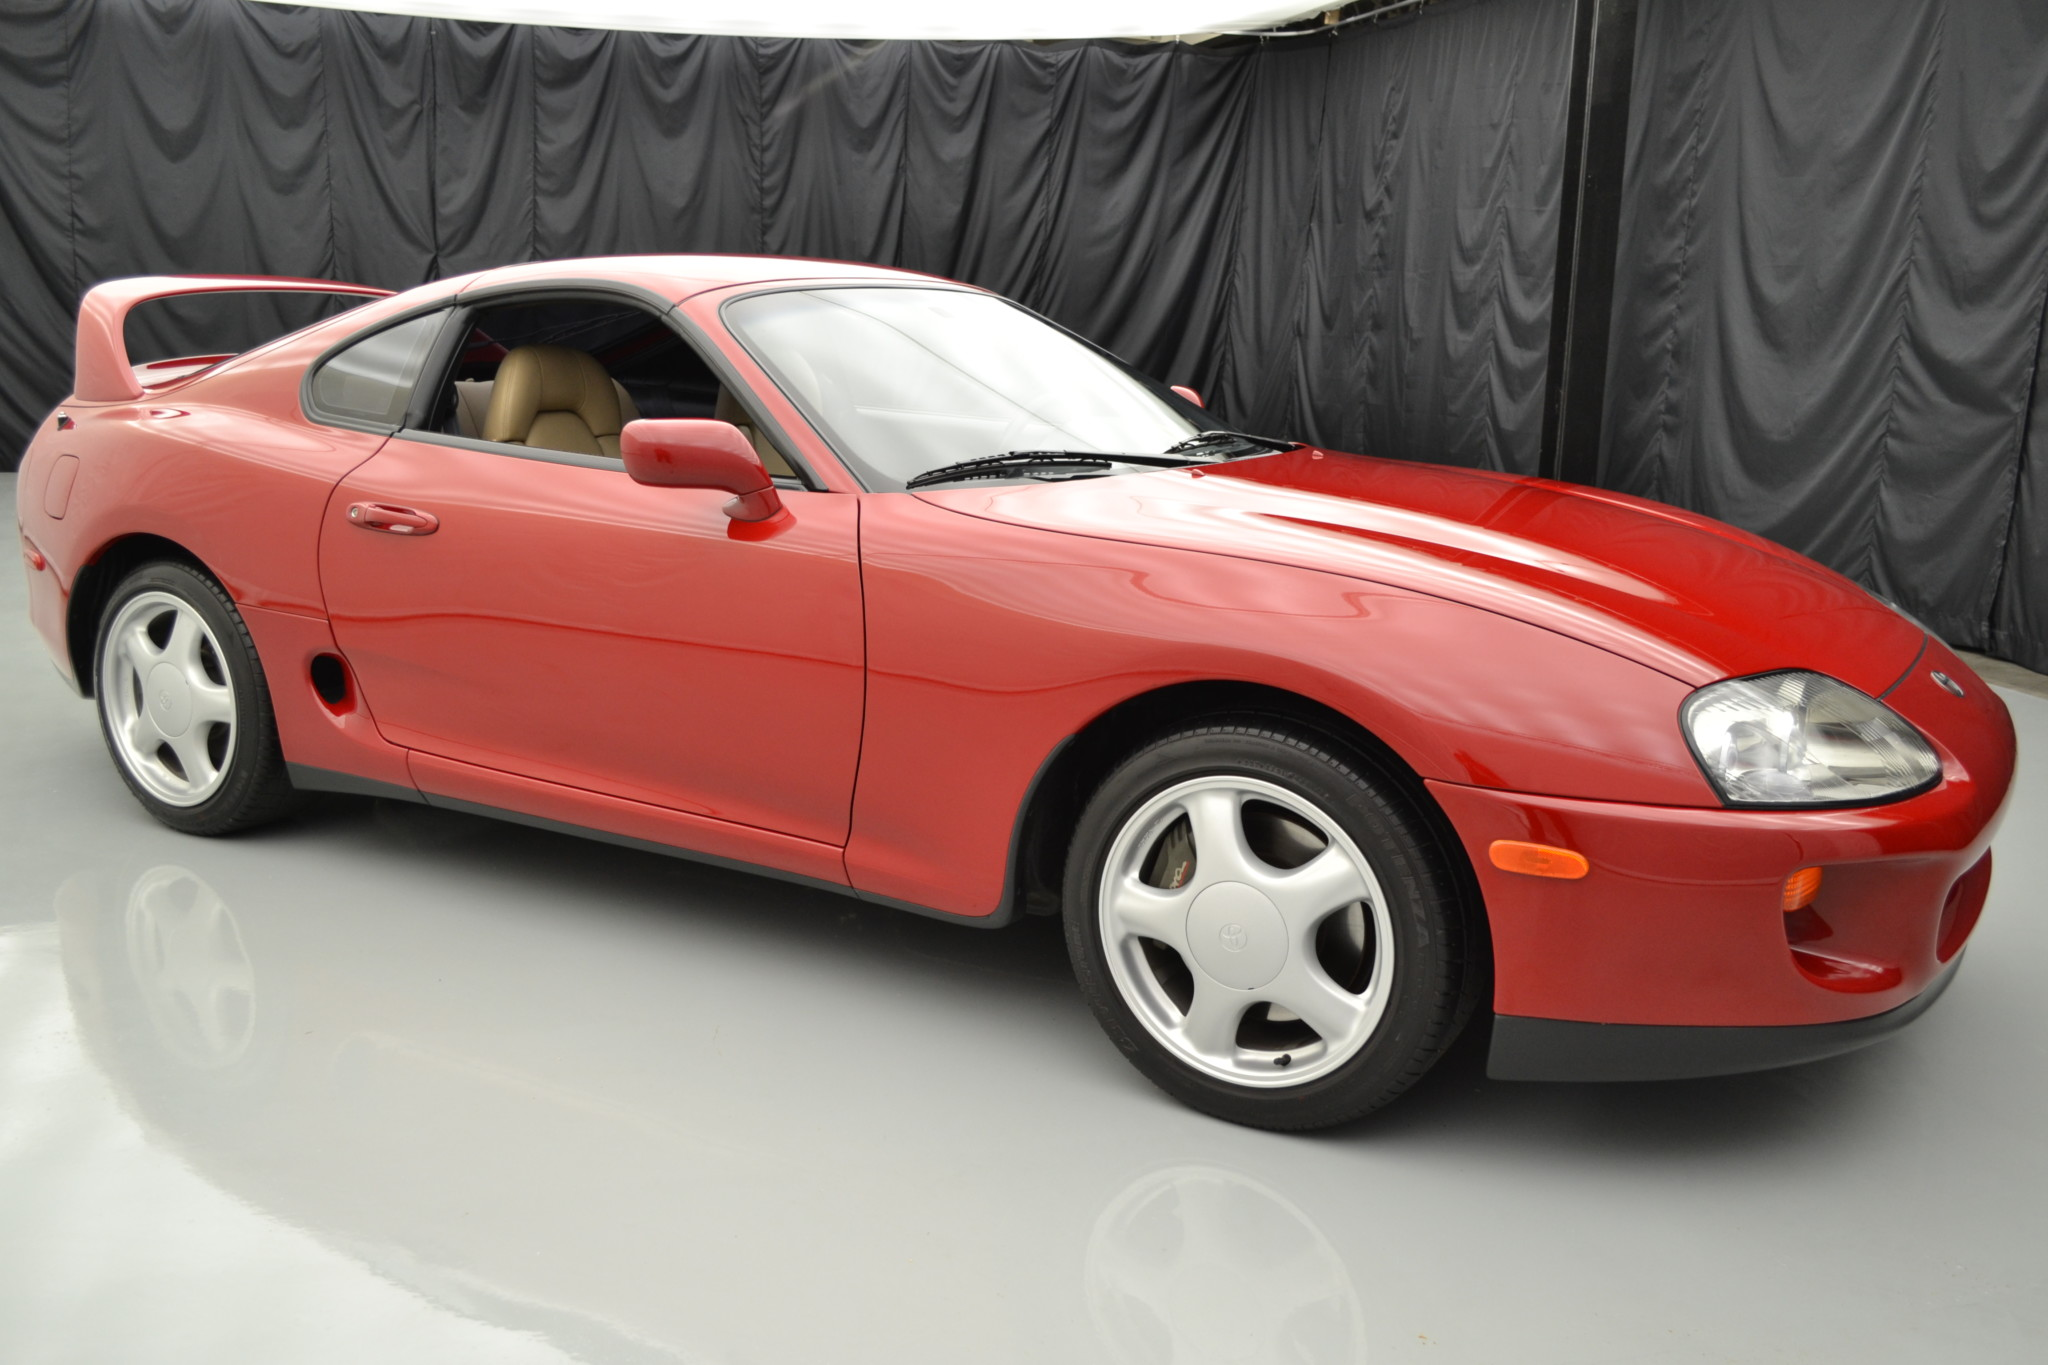 1994 Toyota Supra Twin Turbo 6-speed